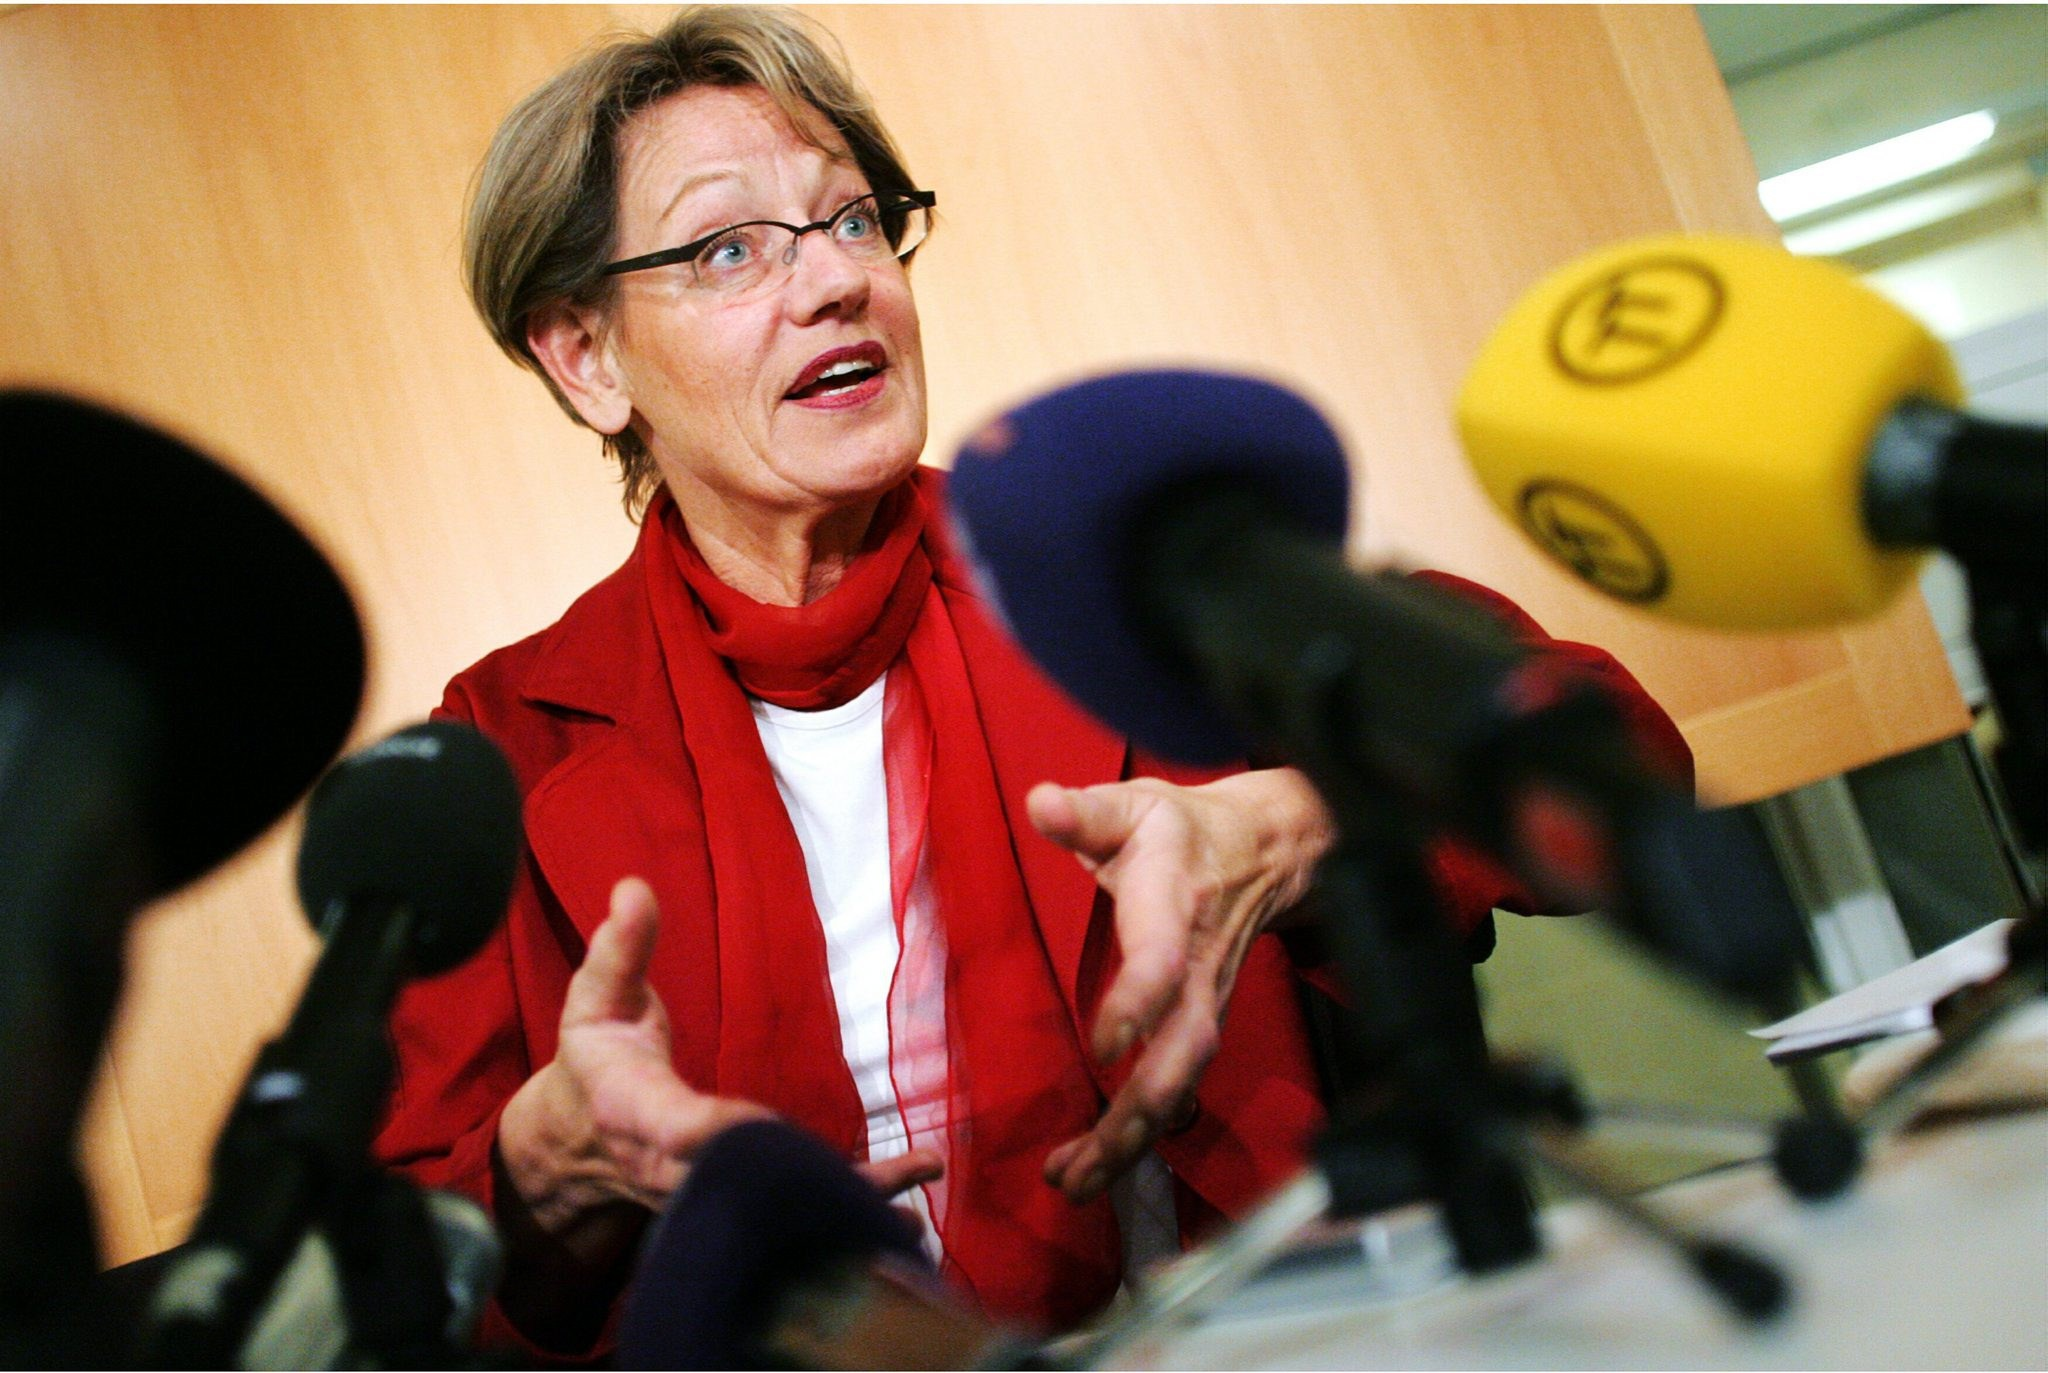 Gudrun Schyman, a Swedish politician and spokeswoman for the Feminist Initiative, pictured here on Dec. 7, 2004.